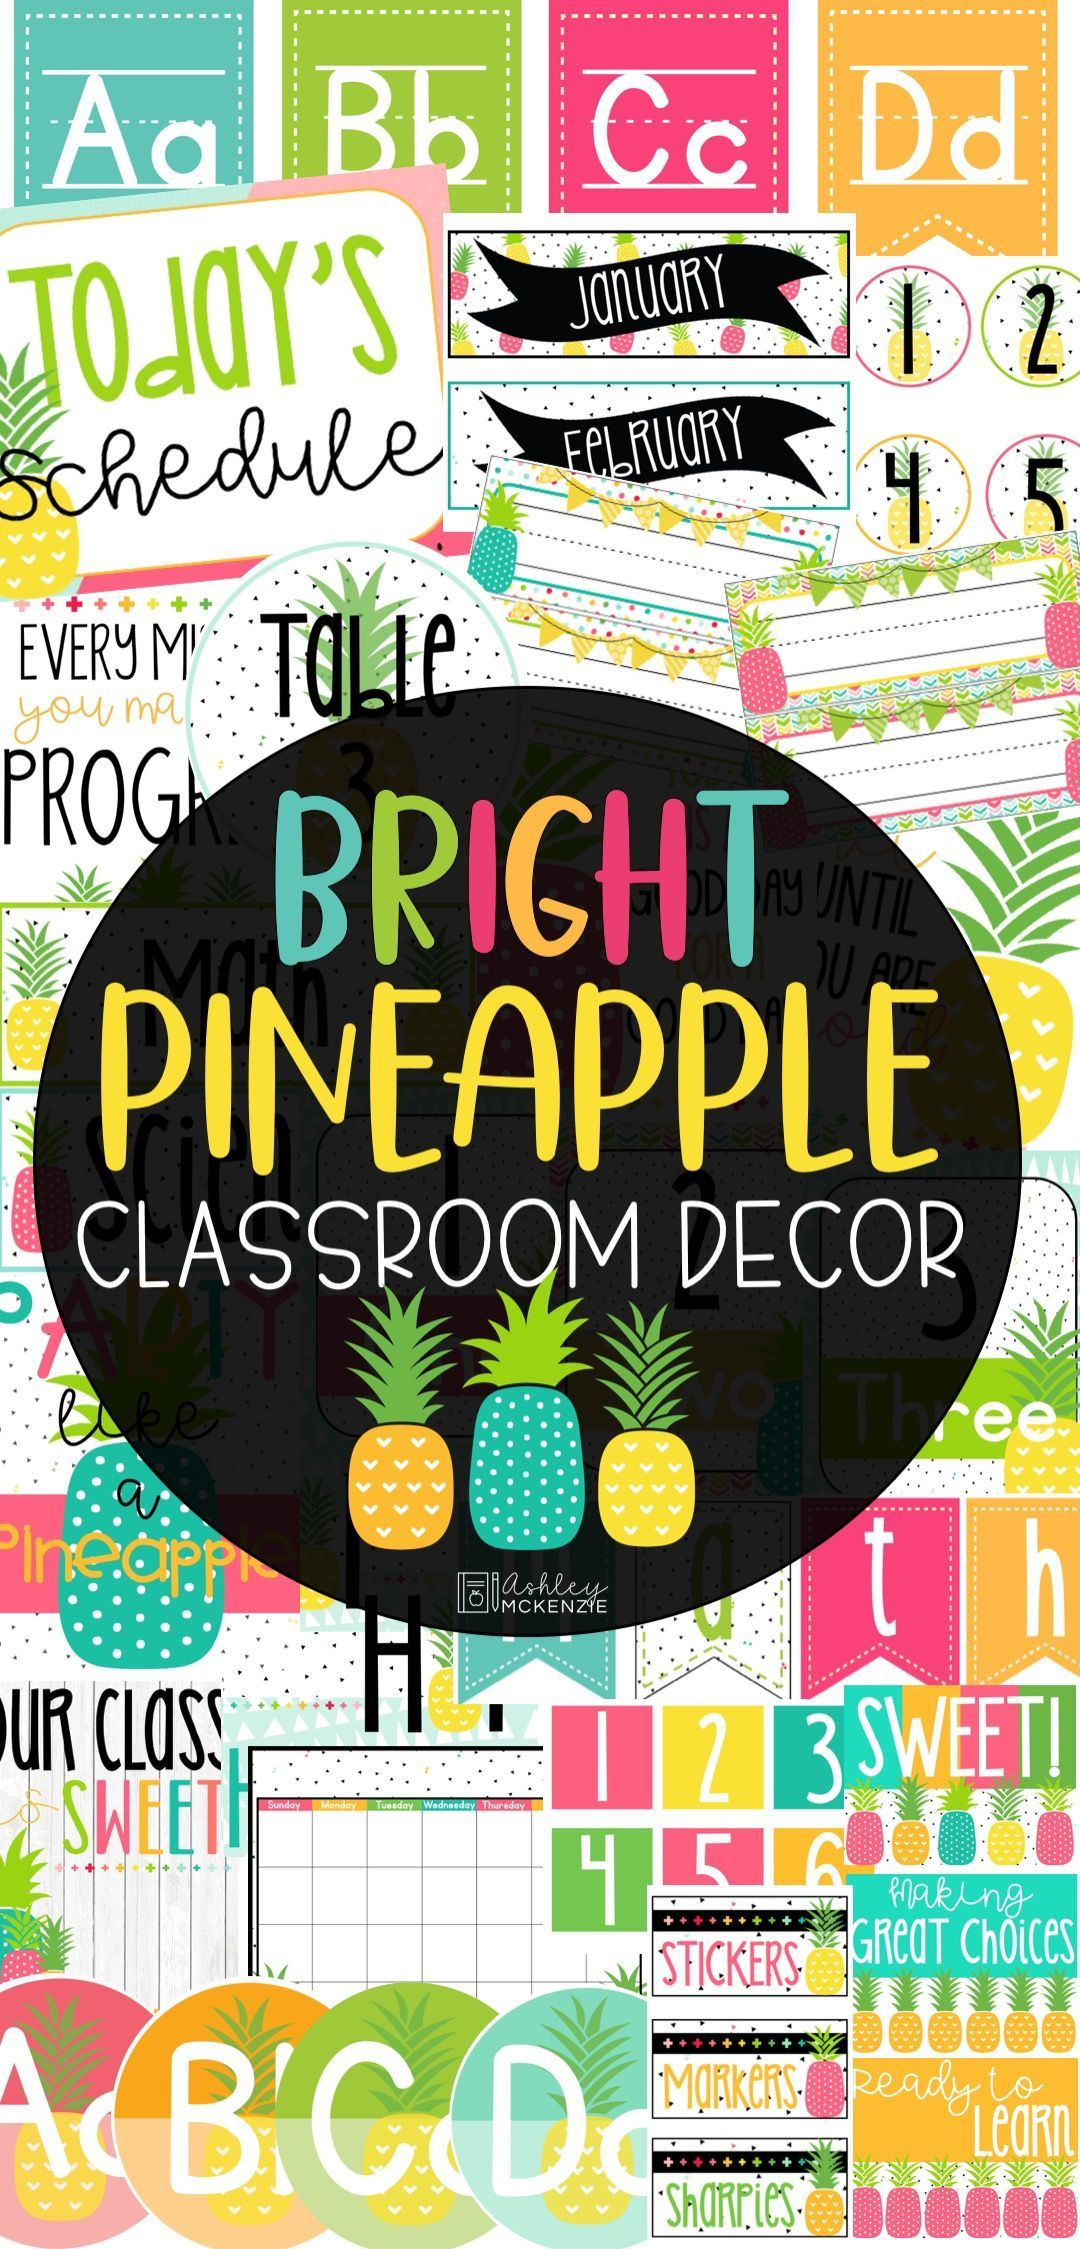 Bright Pineapple Classroom Decor - Make your classroom the envy of the school with this bright and